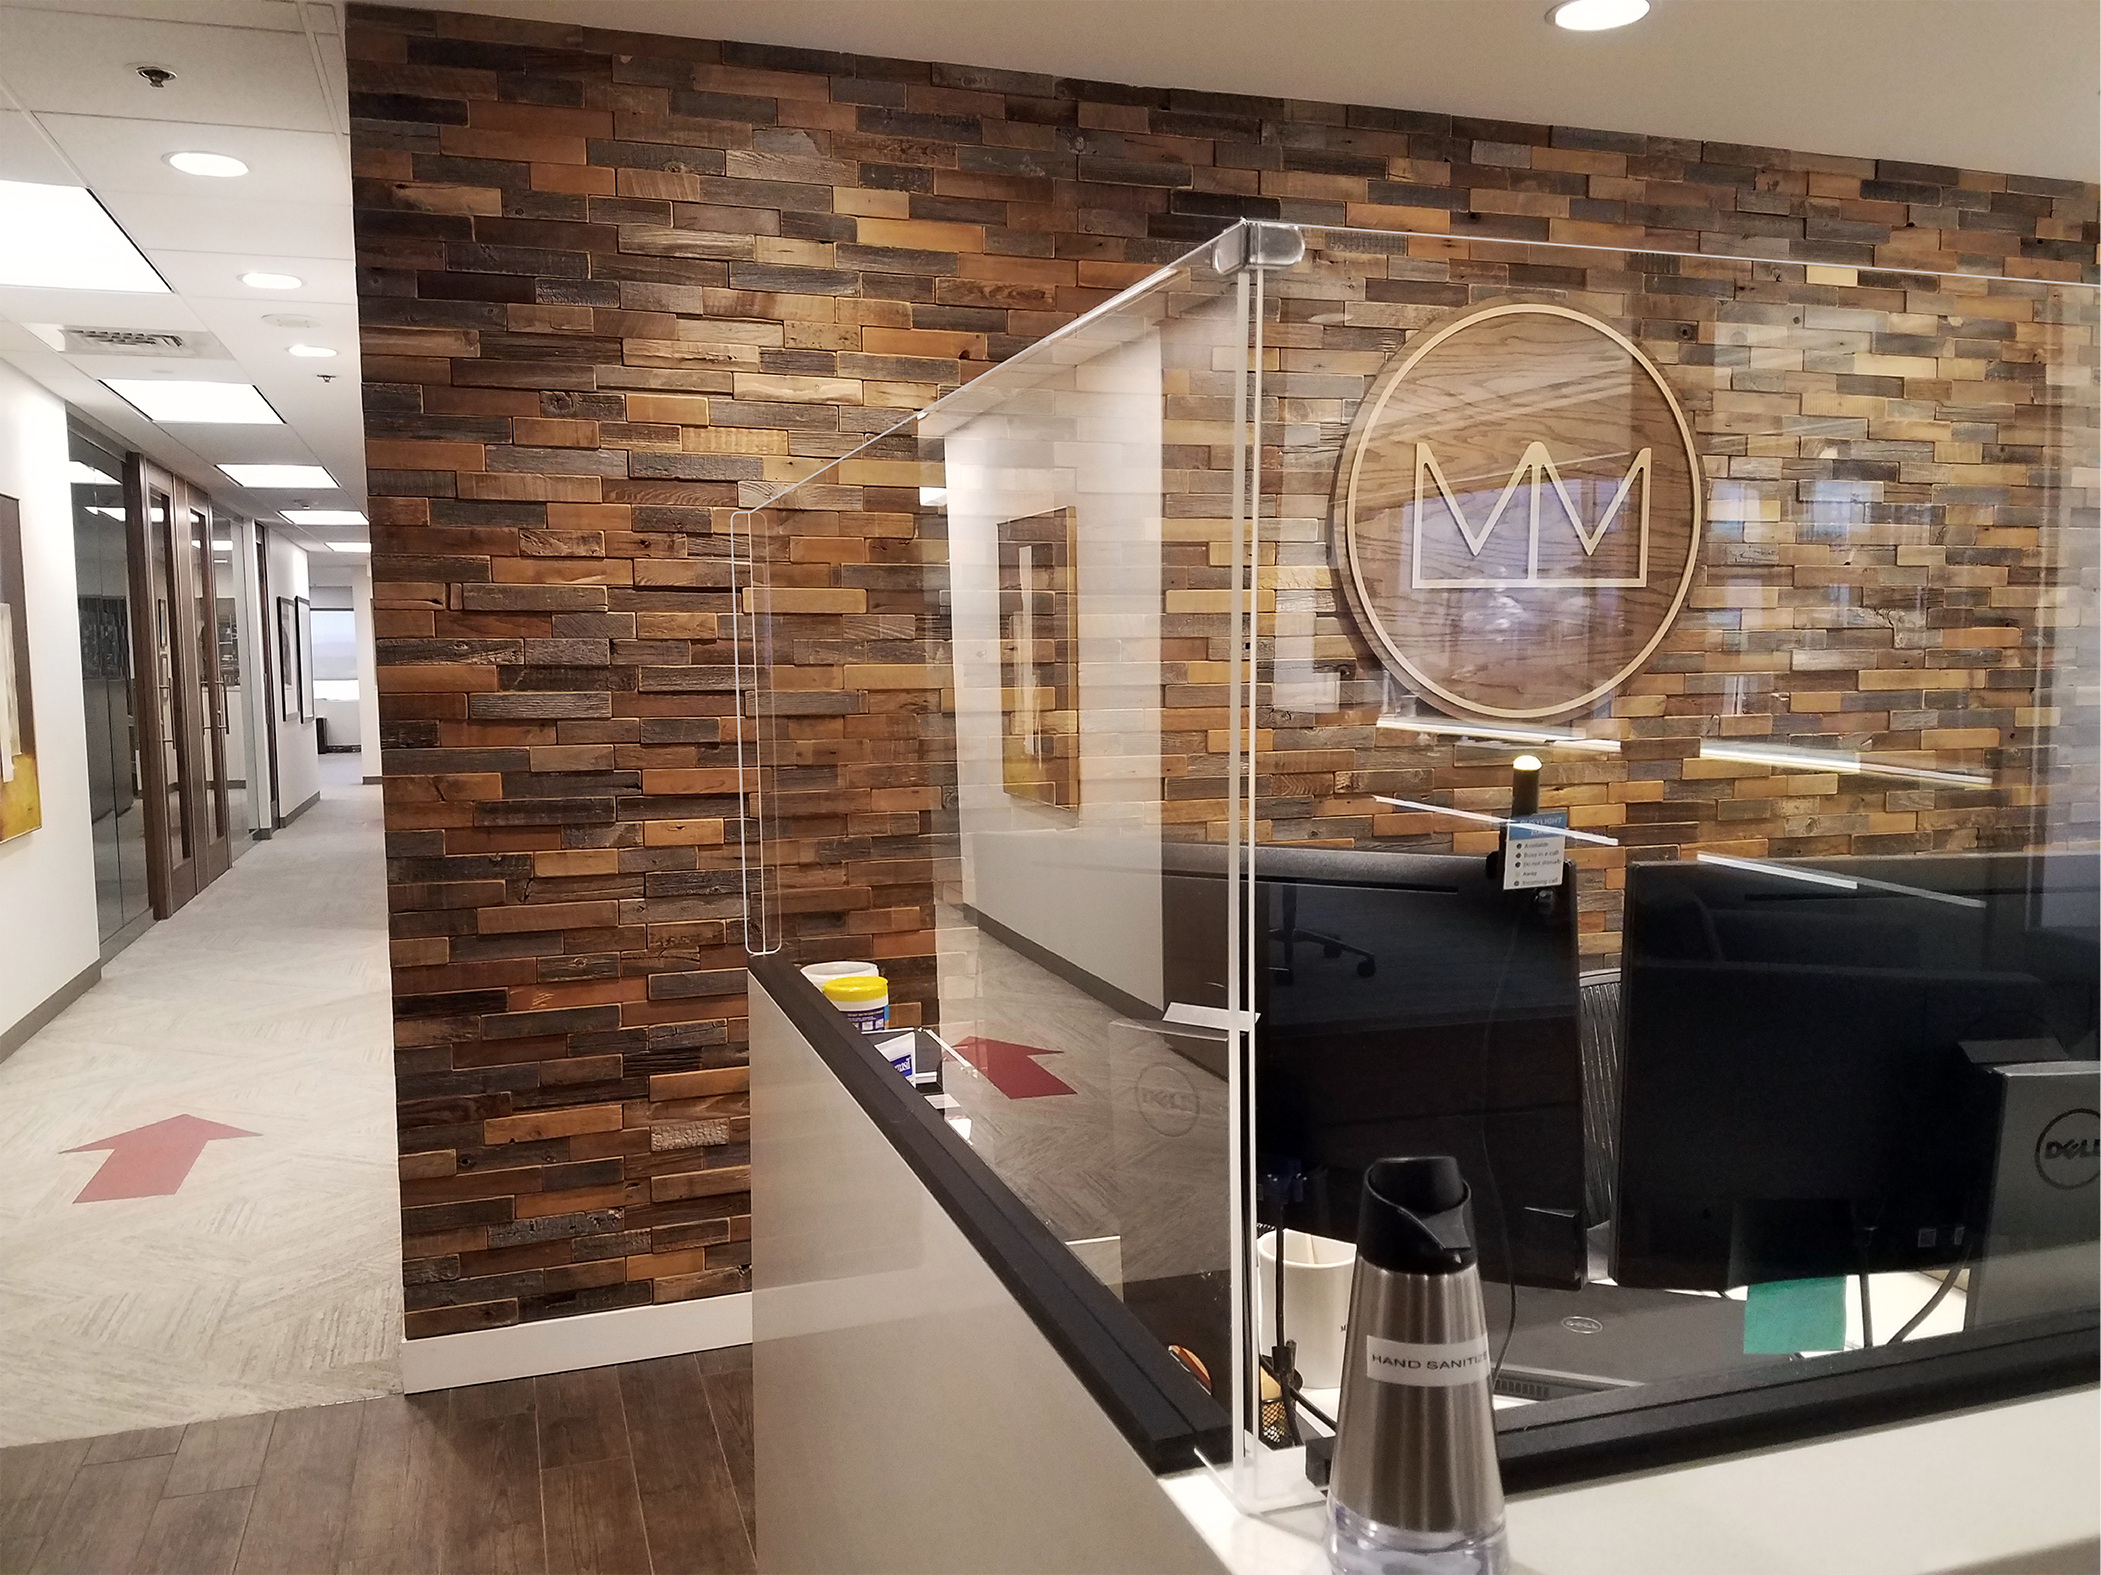 Barriers installed at the front desk of Melvin Mark in downtown Portland office